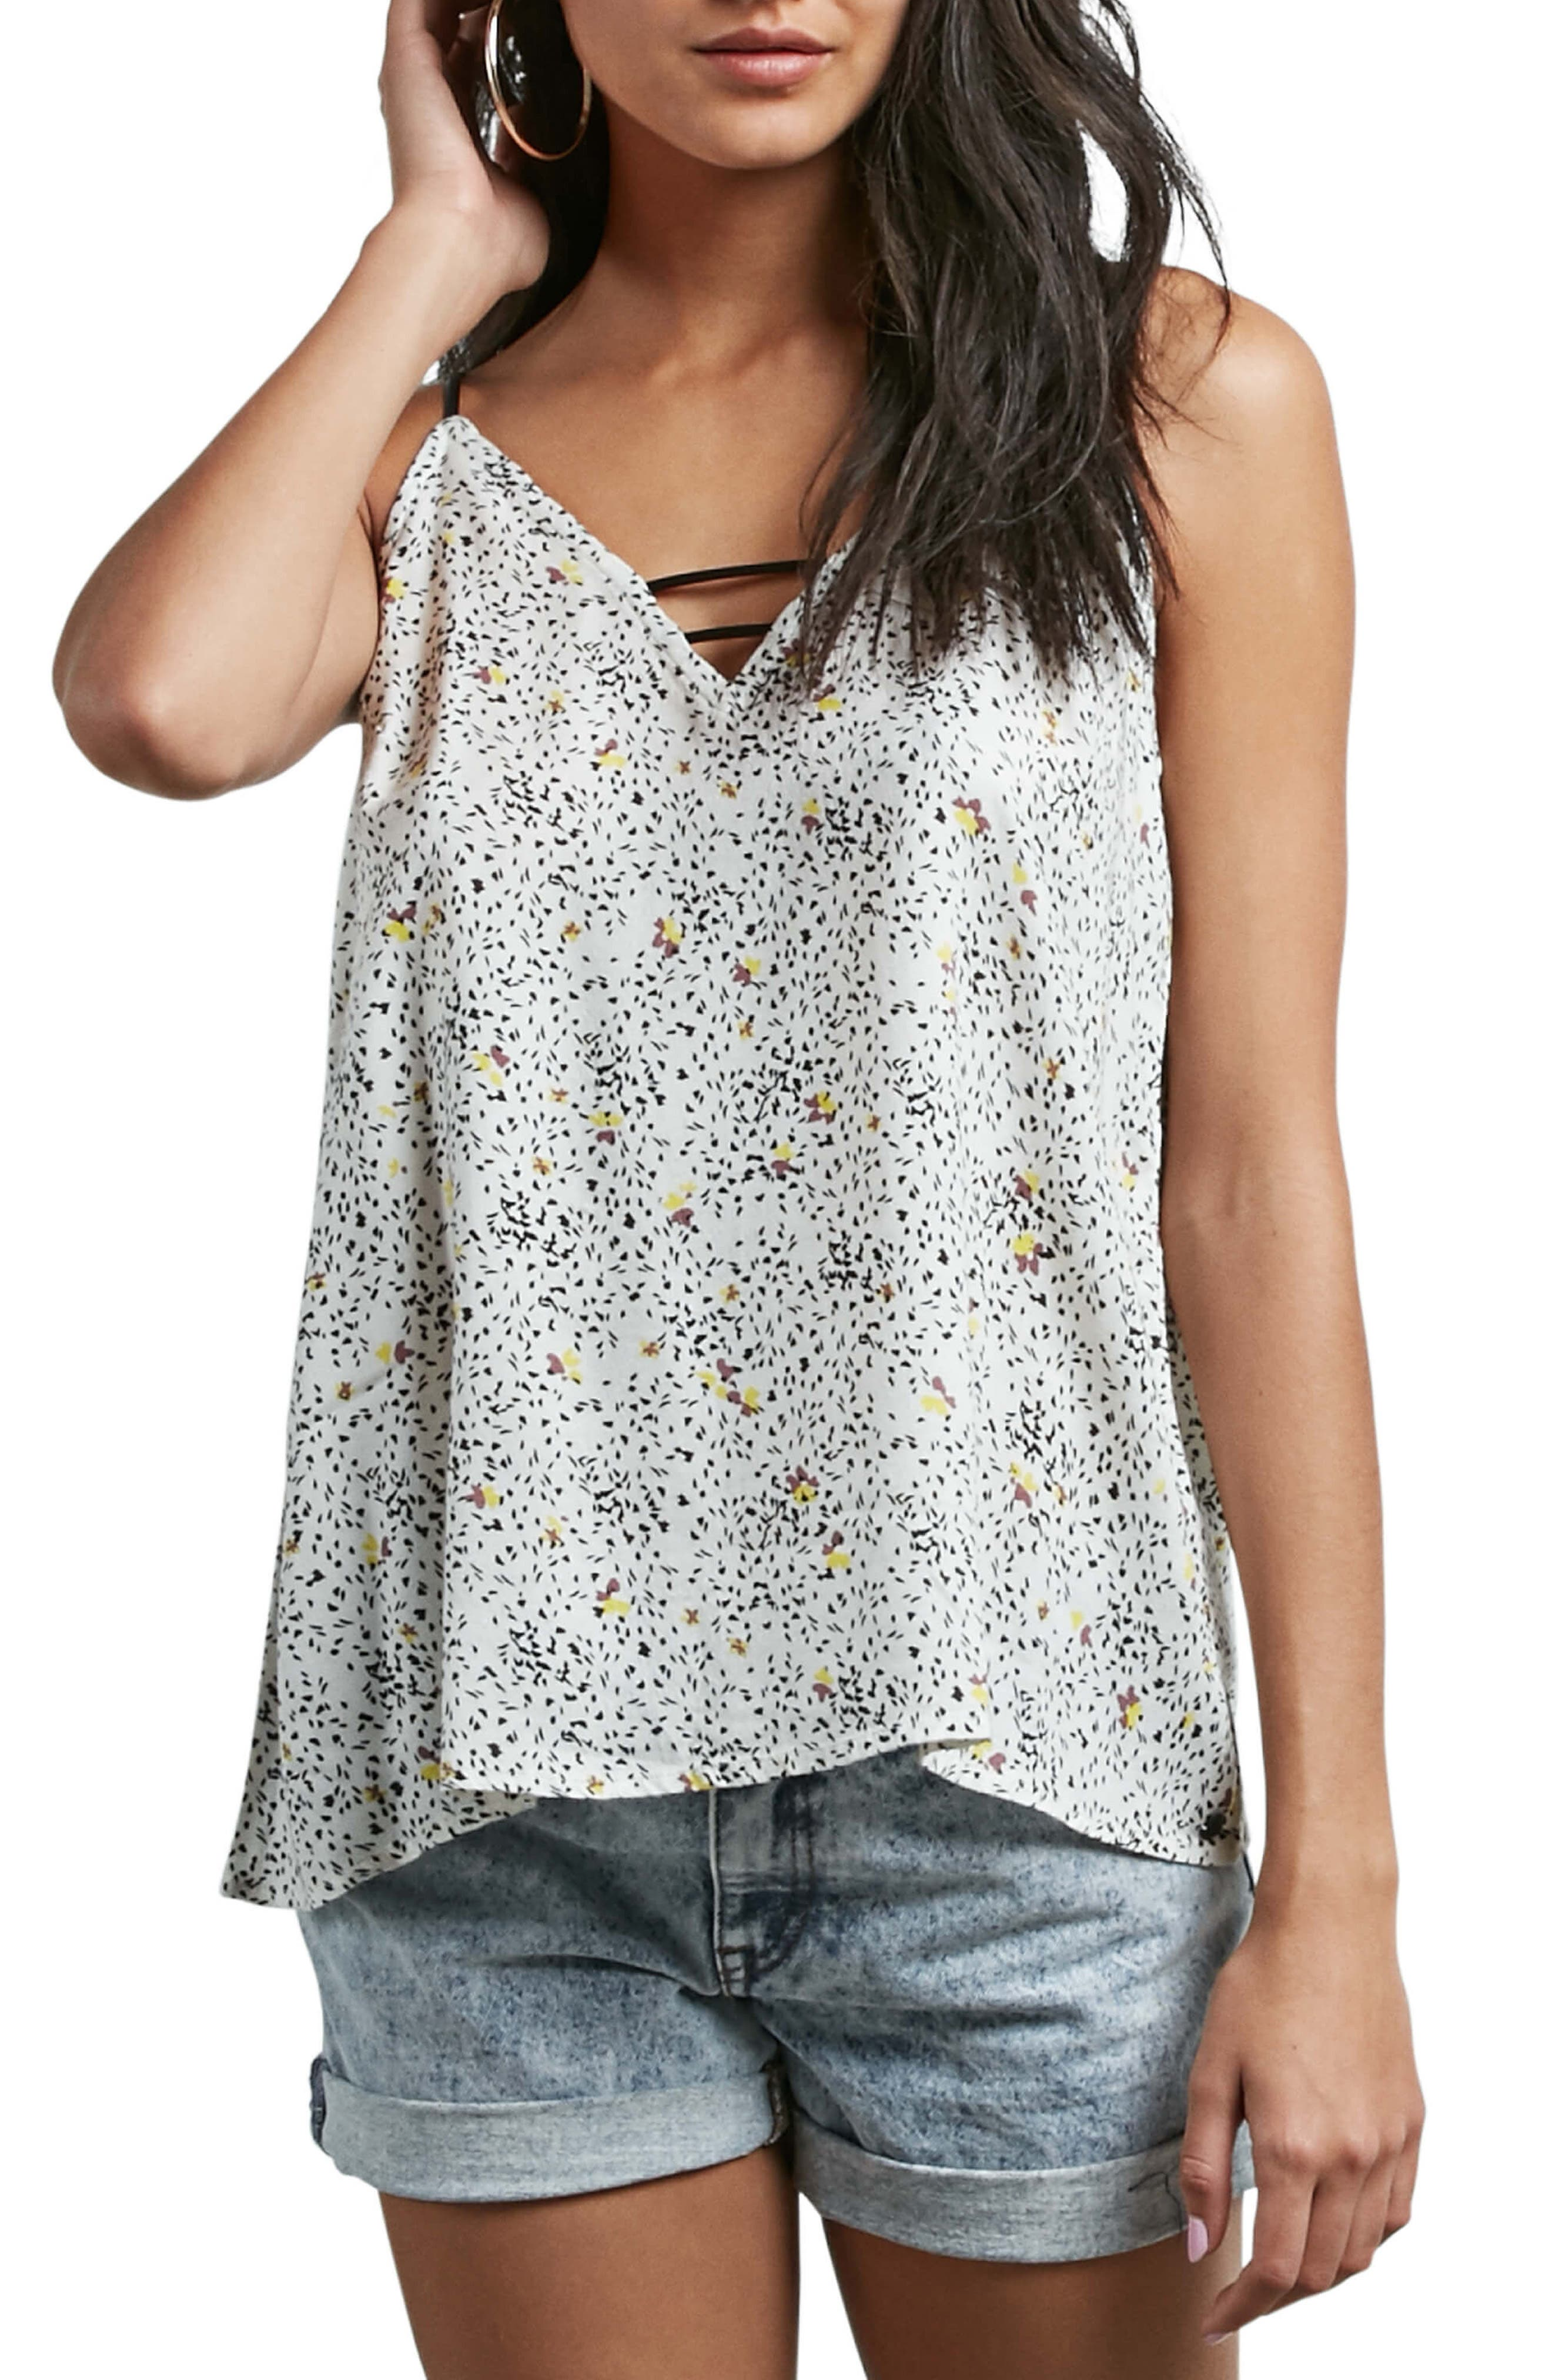 Thx It's a New Top Camisole,                             Main thumbnail 1, color,                             White